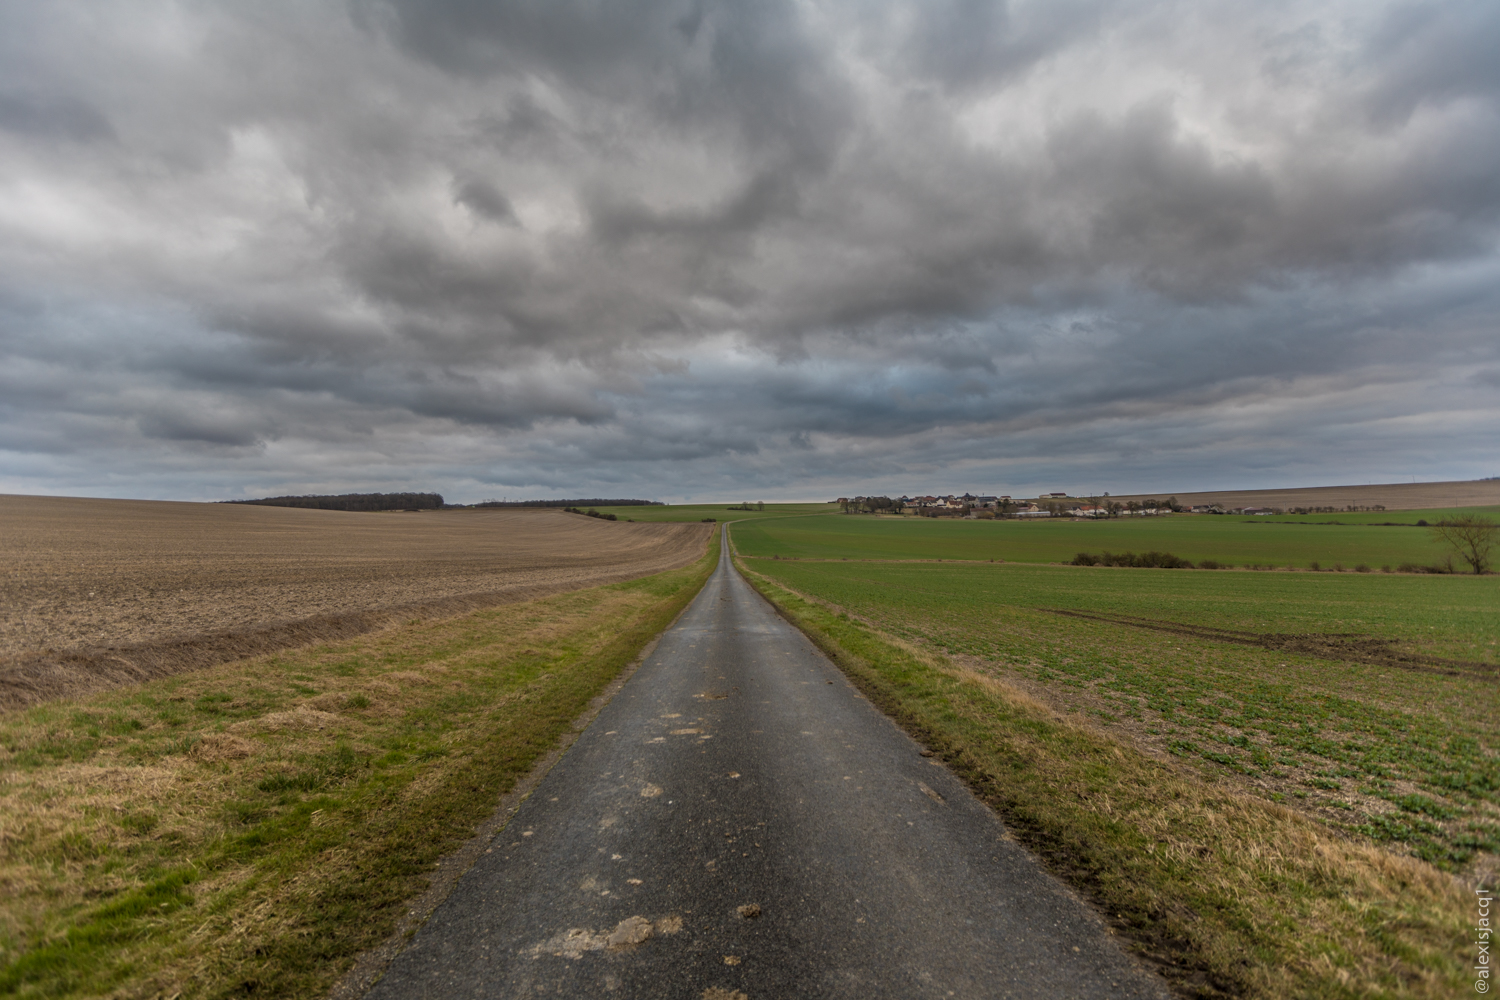 alexis jacquin 2017-1-40 sec at f - 3,2_17 mm_0833_février 27, 2017__ISO 100_Canon_Canon EOS 5D Mark IV_0833WEB.jpg